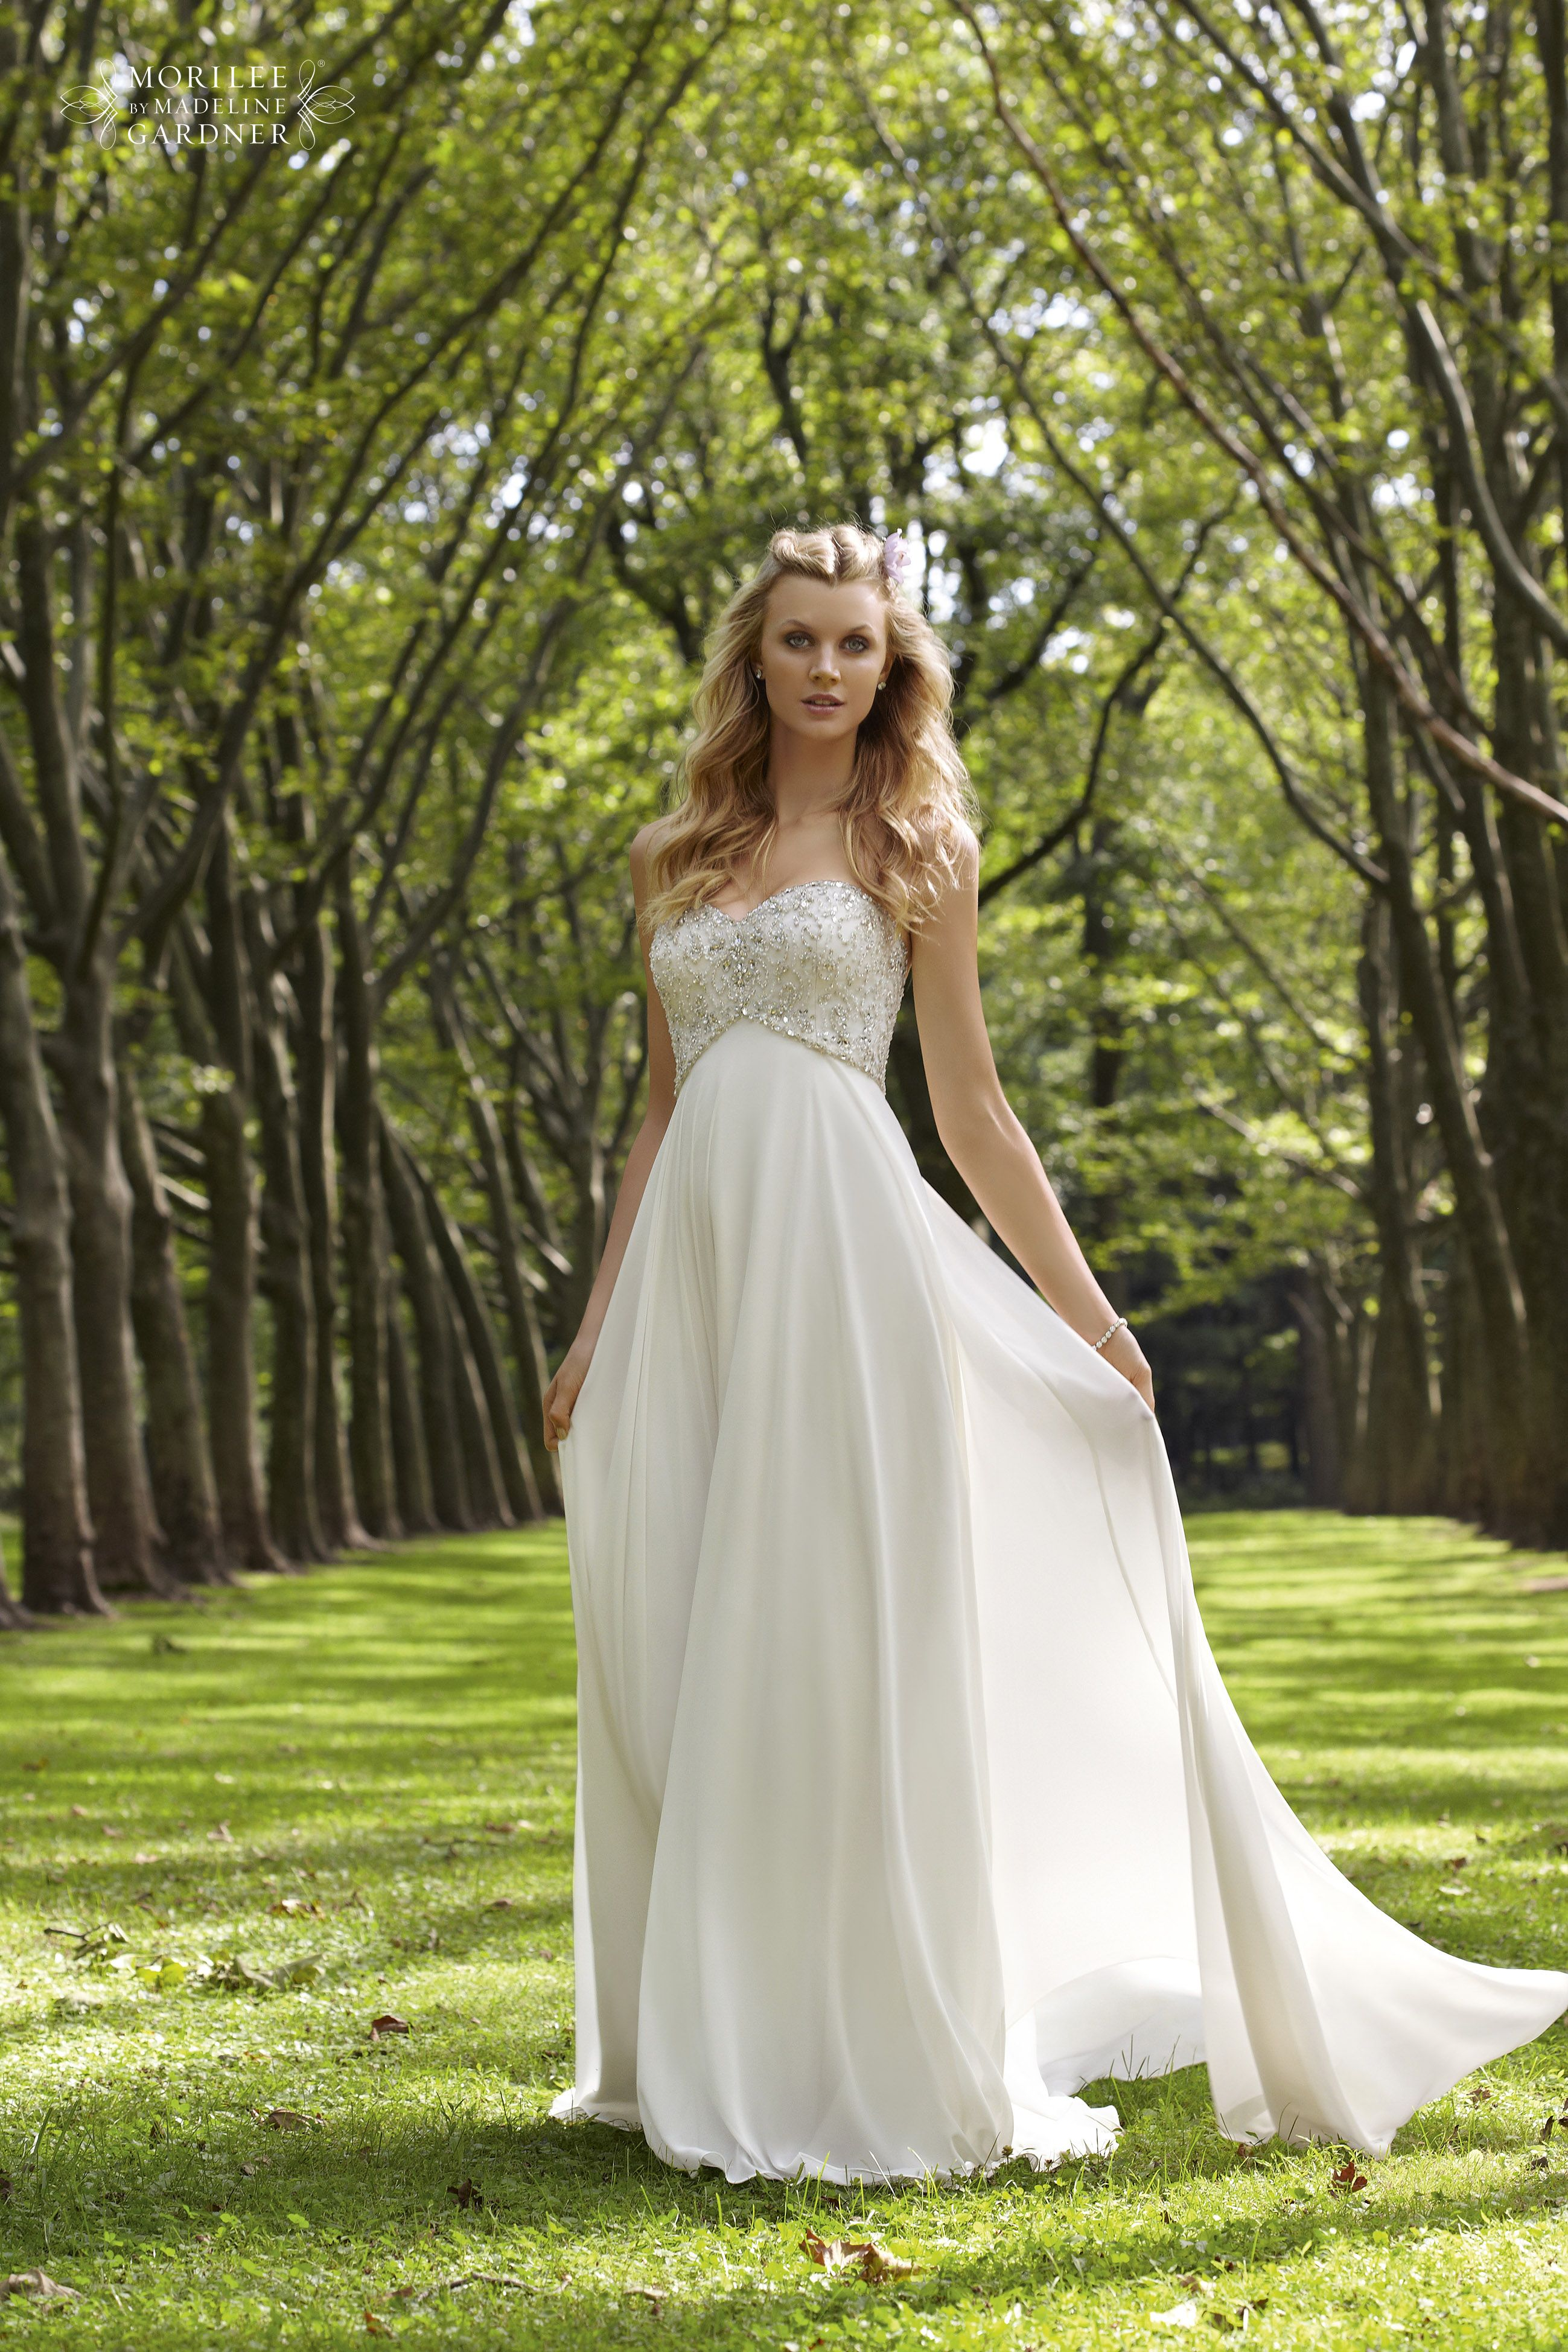 this is a very romantic dress with a chiffon skirt and crystal